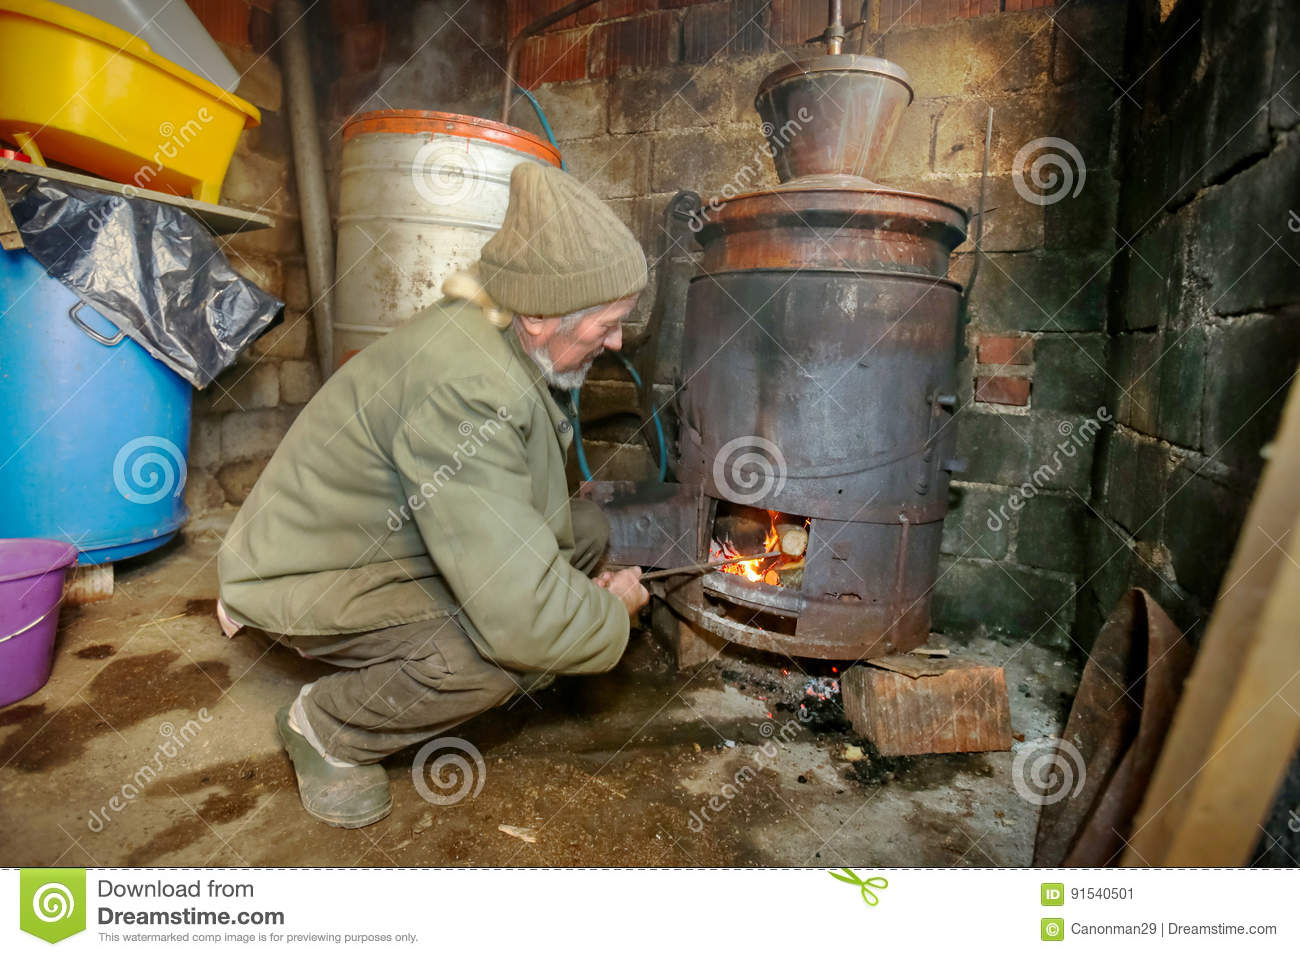 An older man making homemade brandy in the boilers in his shed.